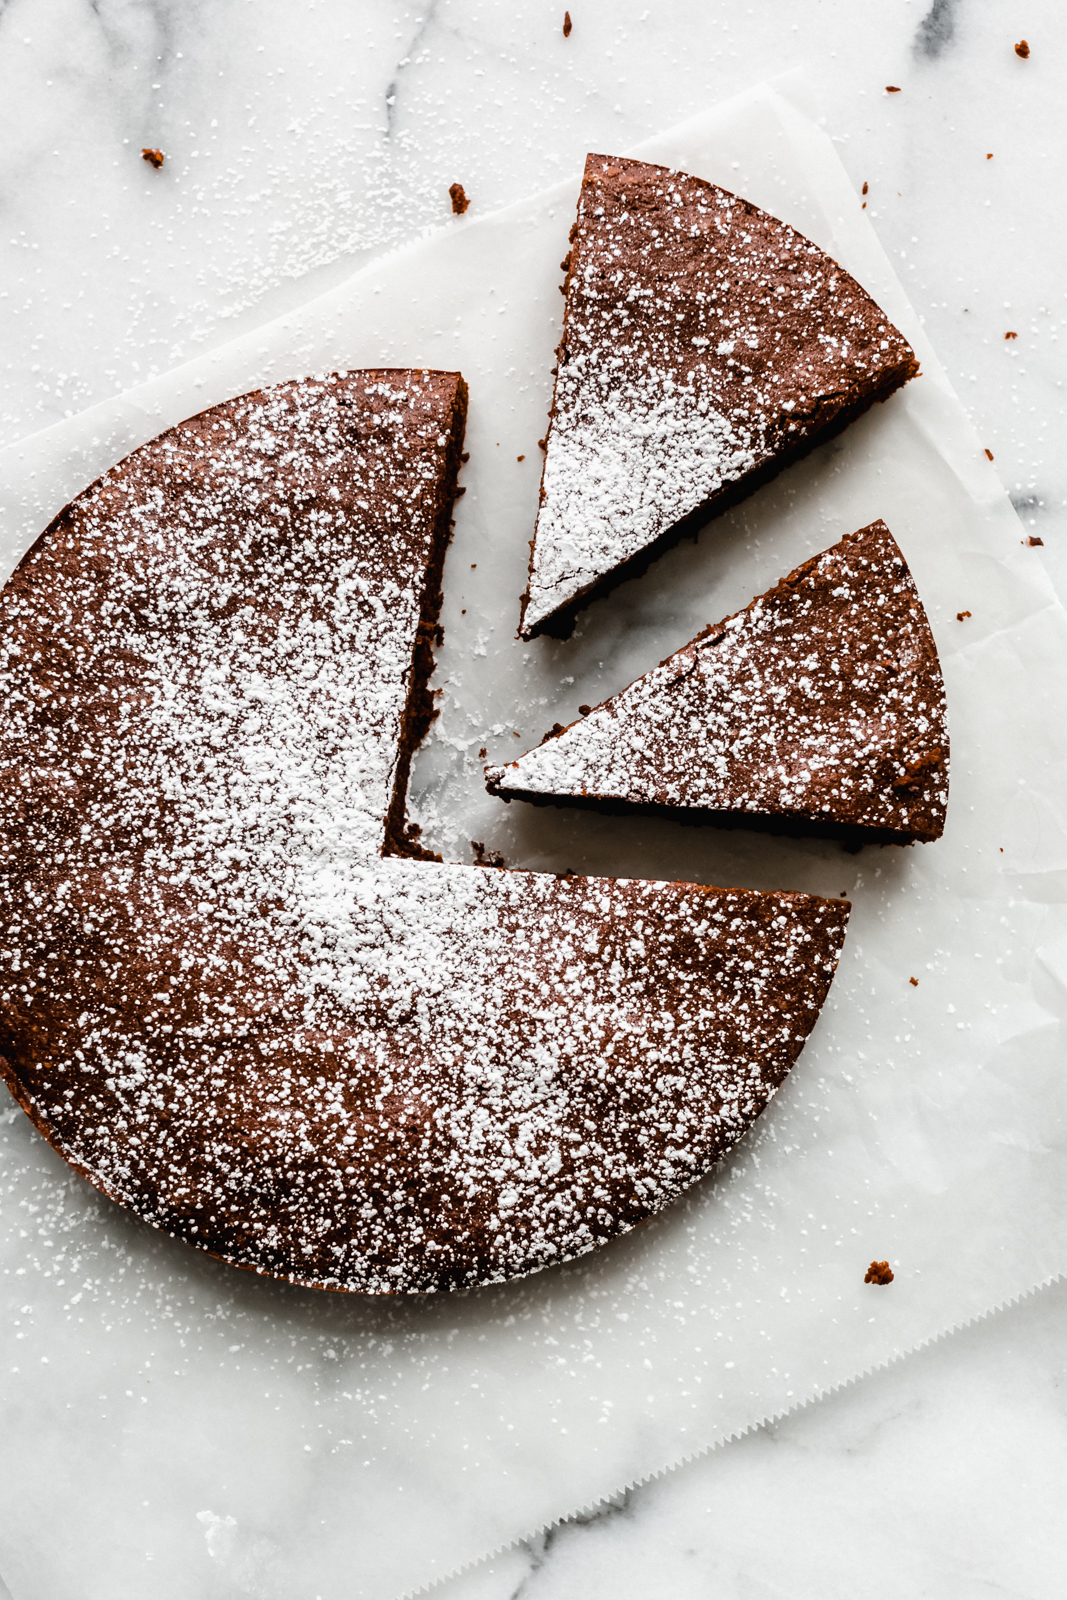 prepared flourless chocolate cake on parchment paper dusted with powdered sugar with two slices cut out